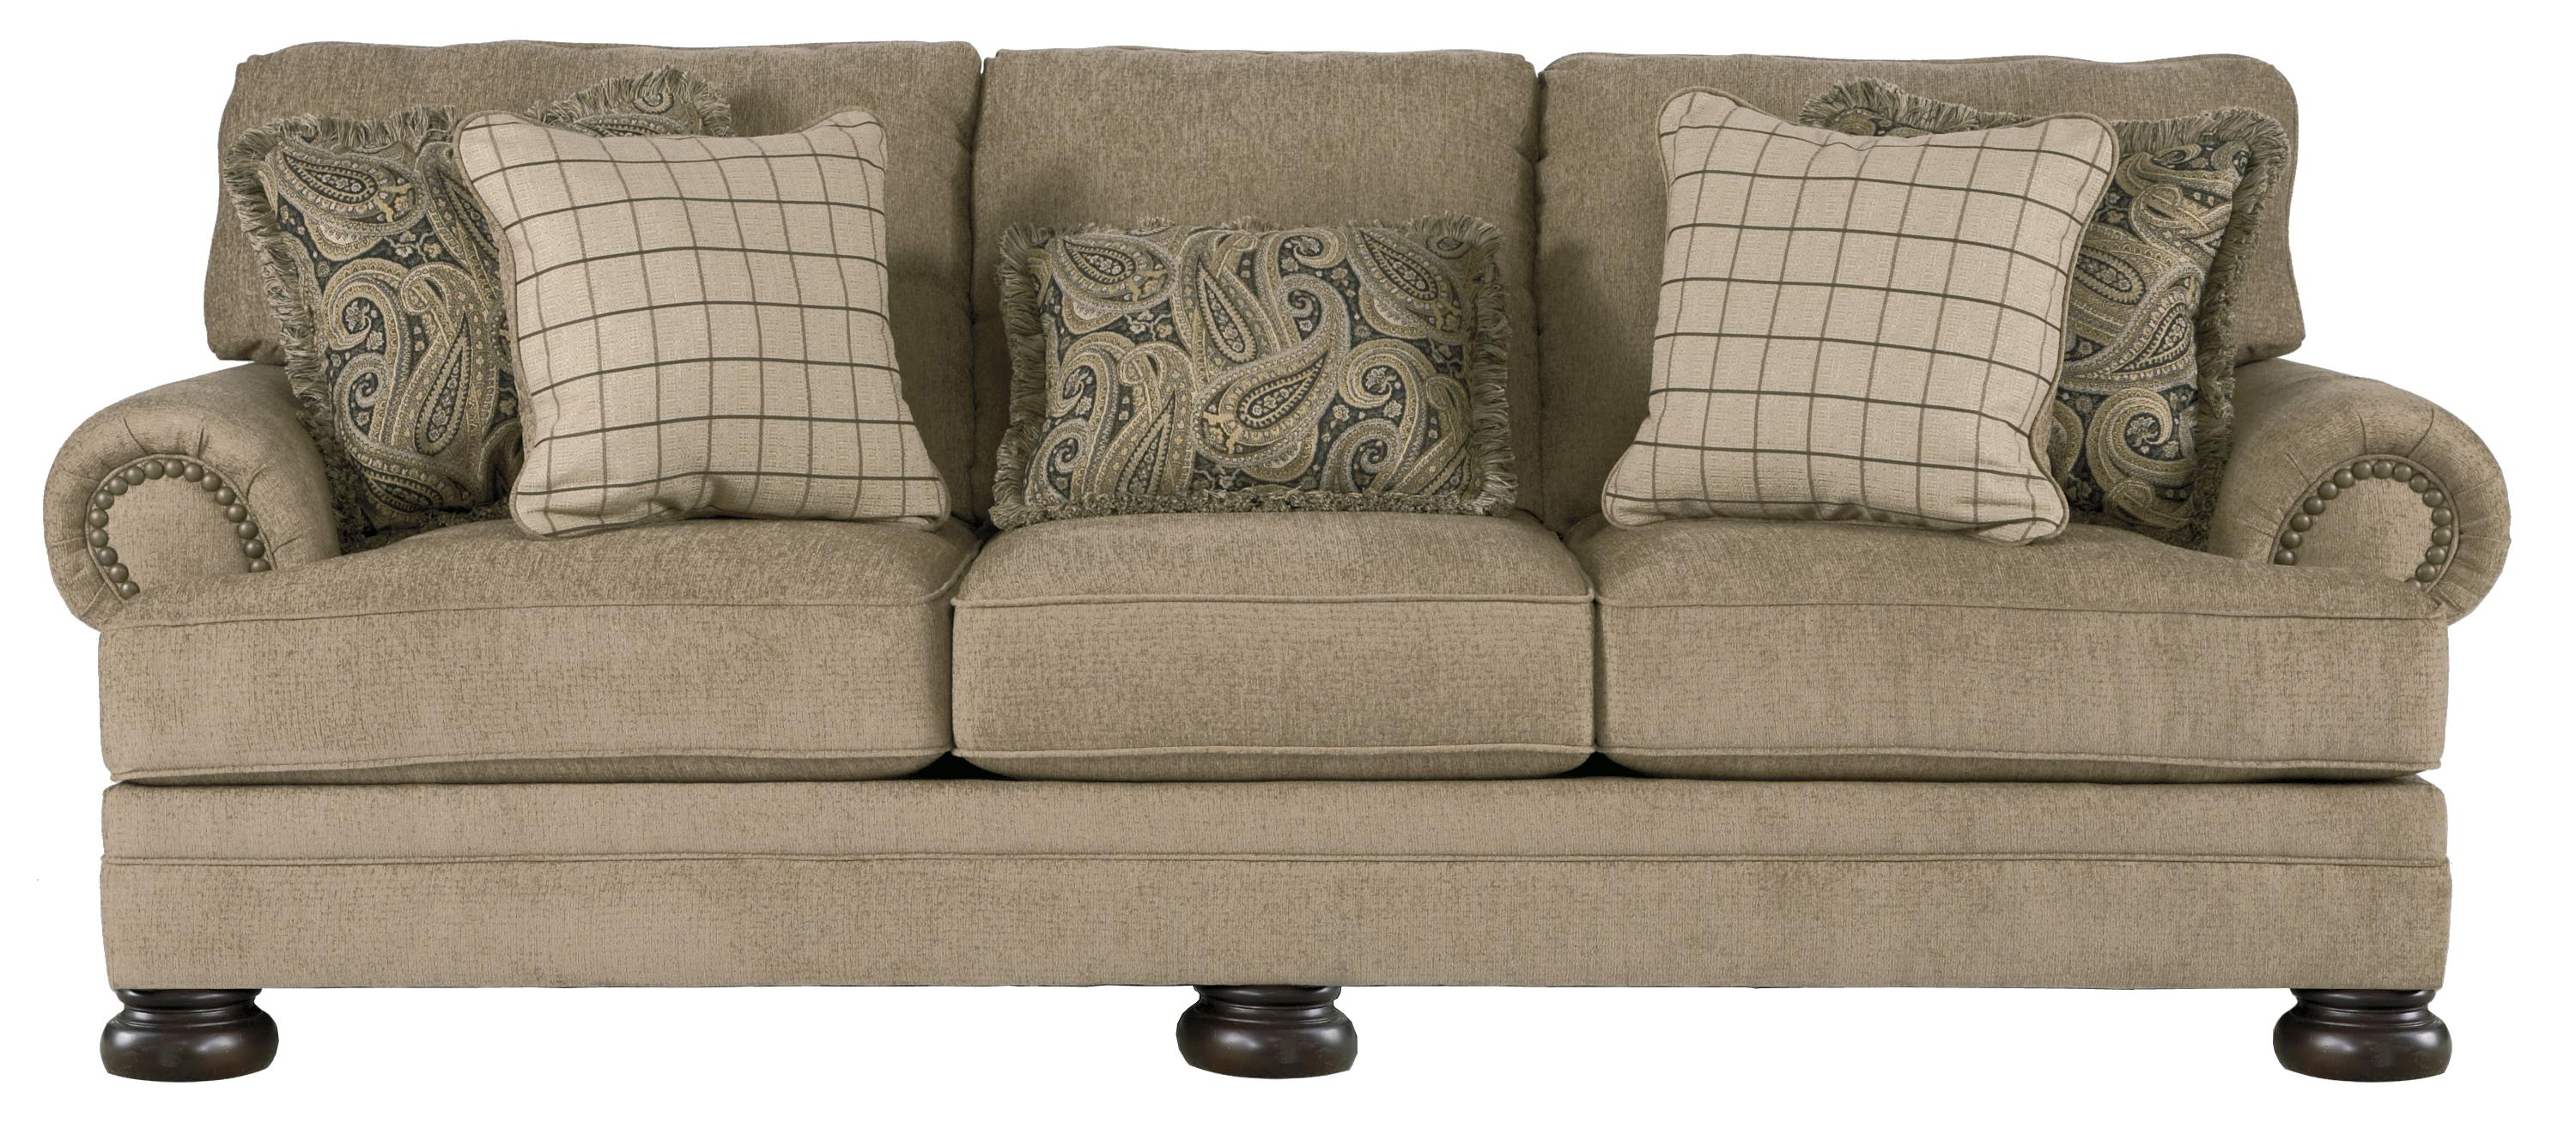 Transitional Sofa With Rolled Arms And Bun Feet